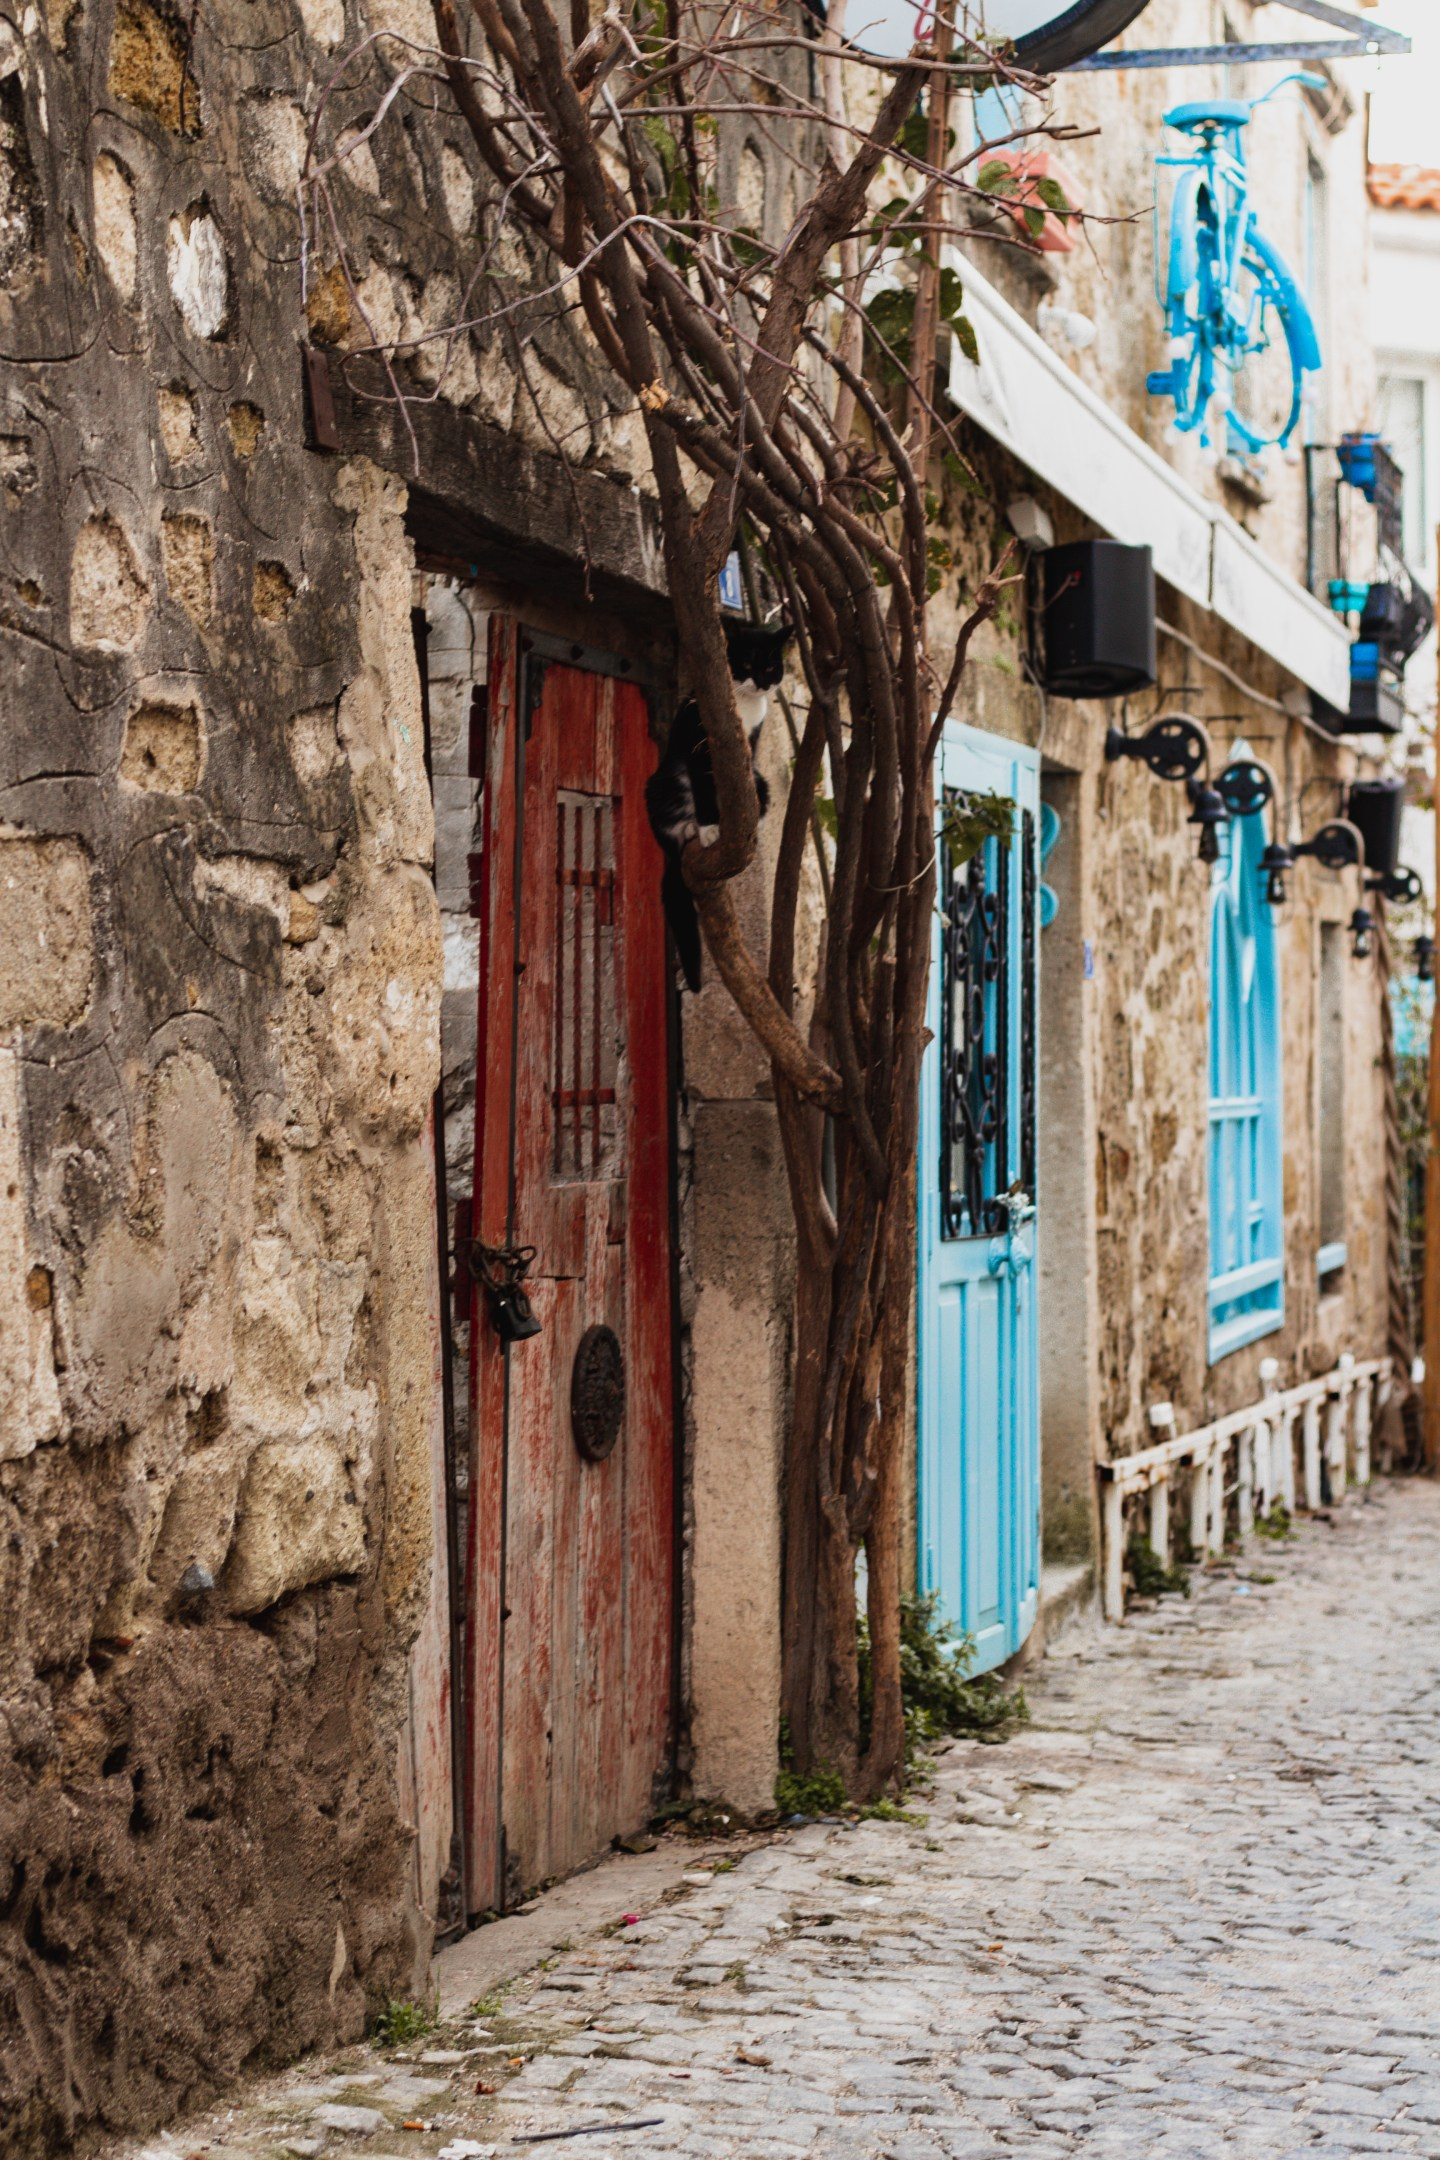 Illustrated by Sade - Cobble stone streets and houses of Alacati, Izmir, Turkey